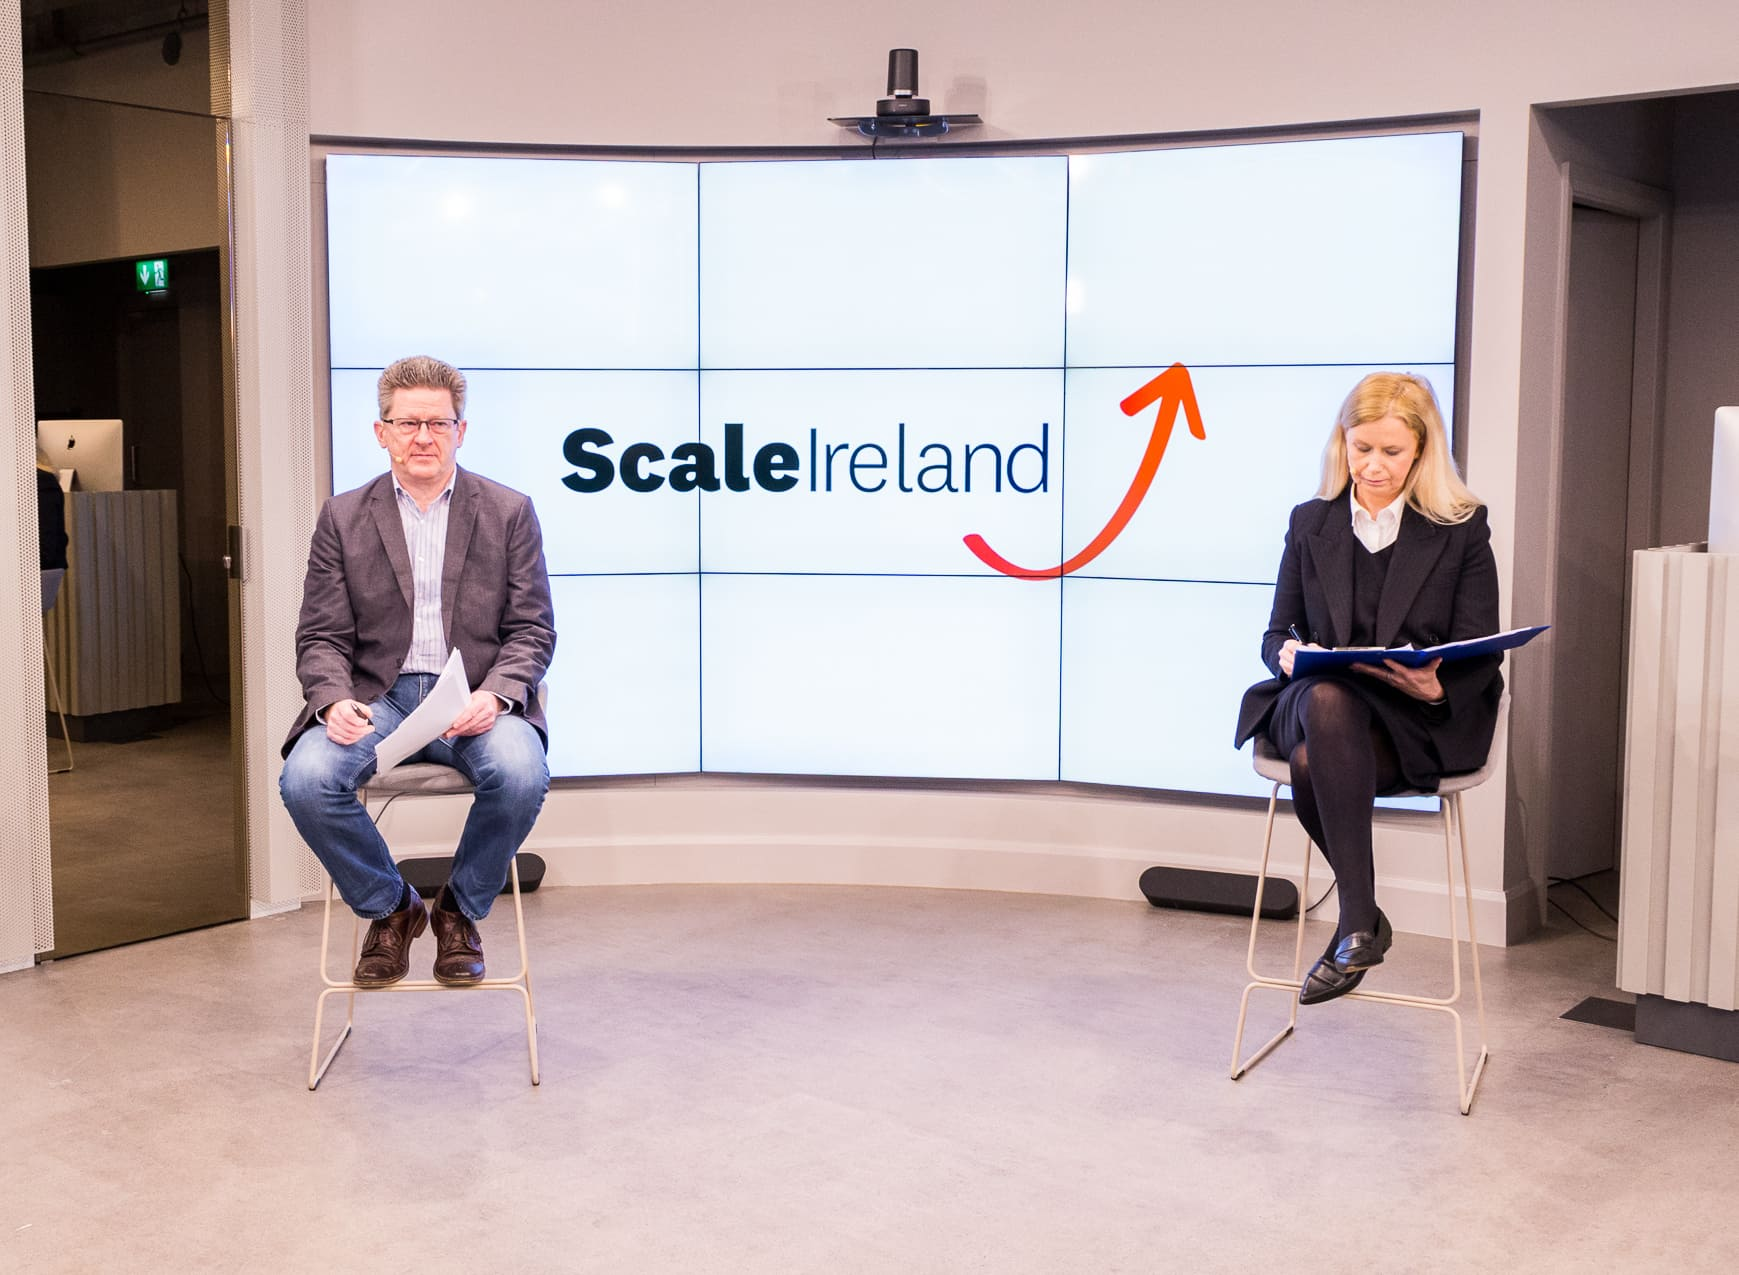 Brian Caulfield (left) and Martina Fitzgerald (right) at the Scale Ireland webinar.